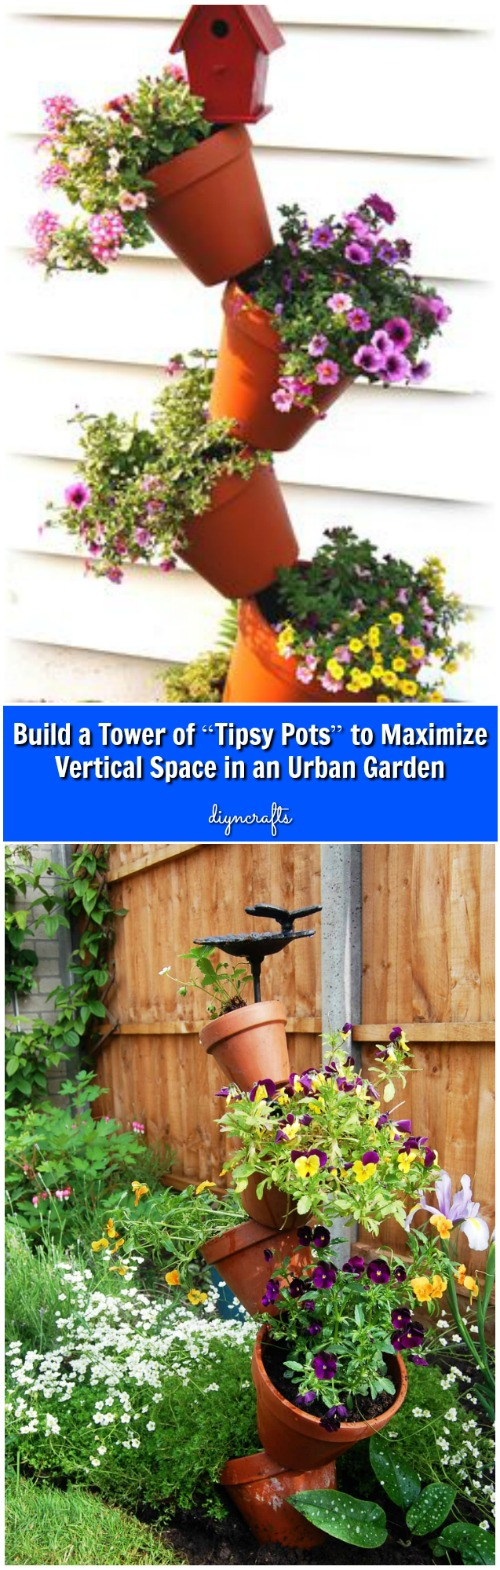 "Build a Tower of ""Tipsy Pots"" to Maximize Vertical Space in an Urban Garden {Video}"